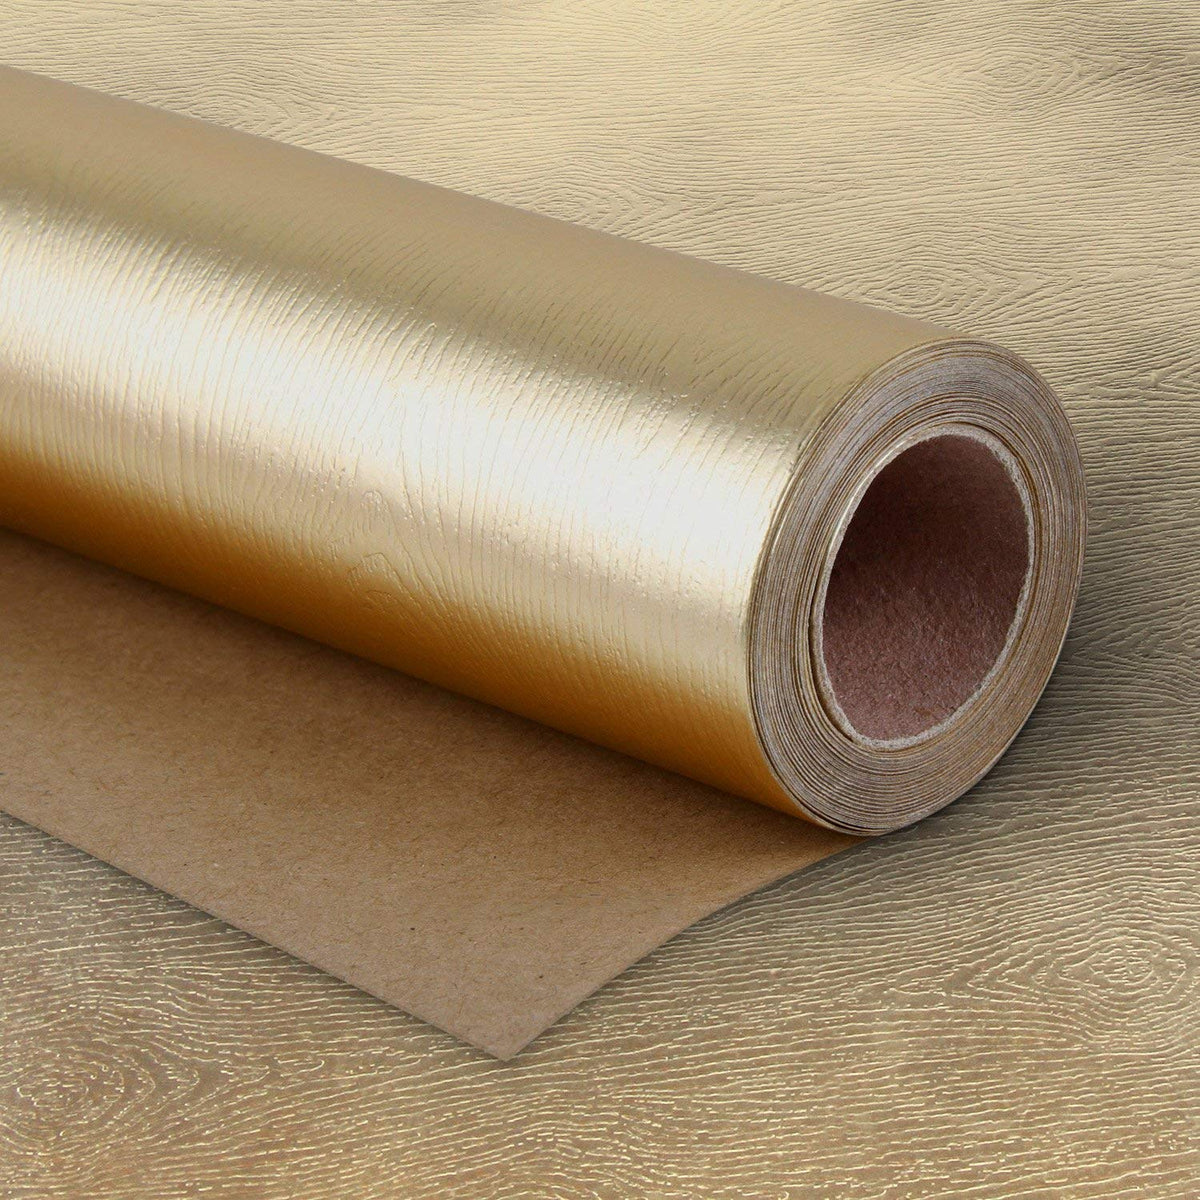 Wrapaholic-Metalic-Gift-Wrapping-Paper- Gold- Wood-Grain-m